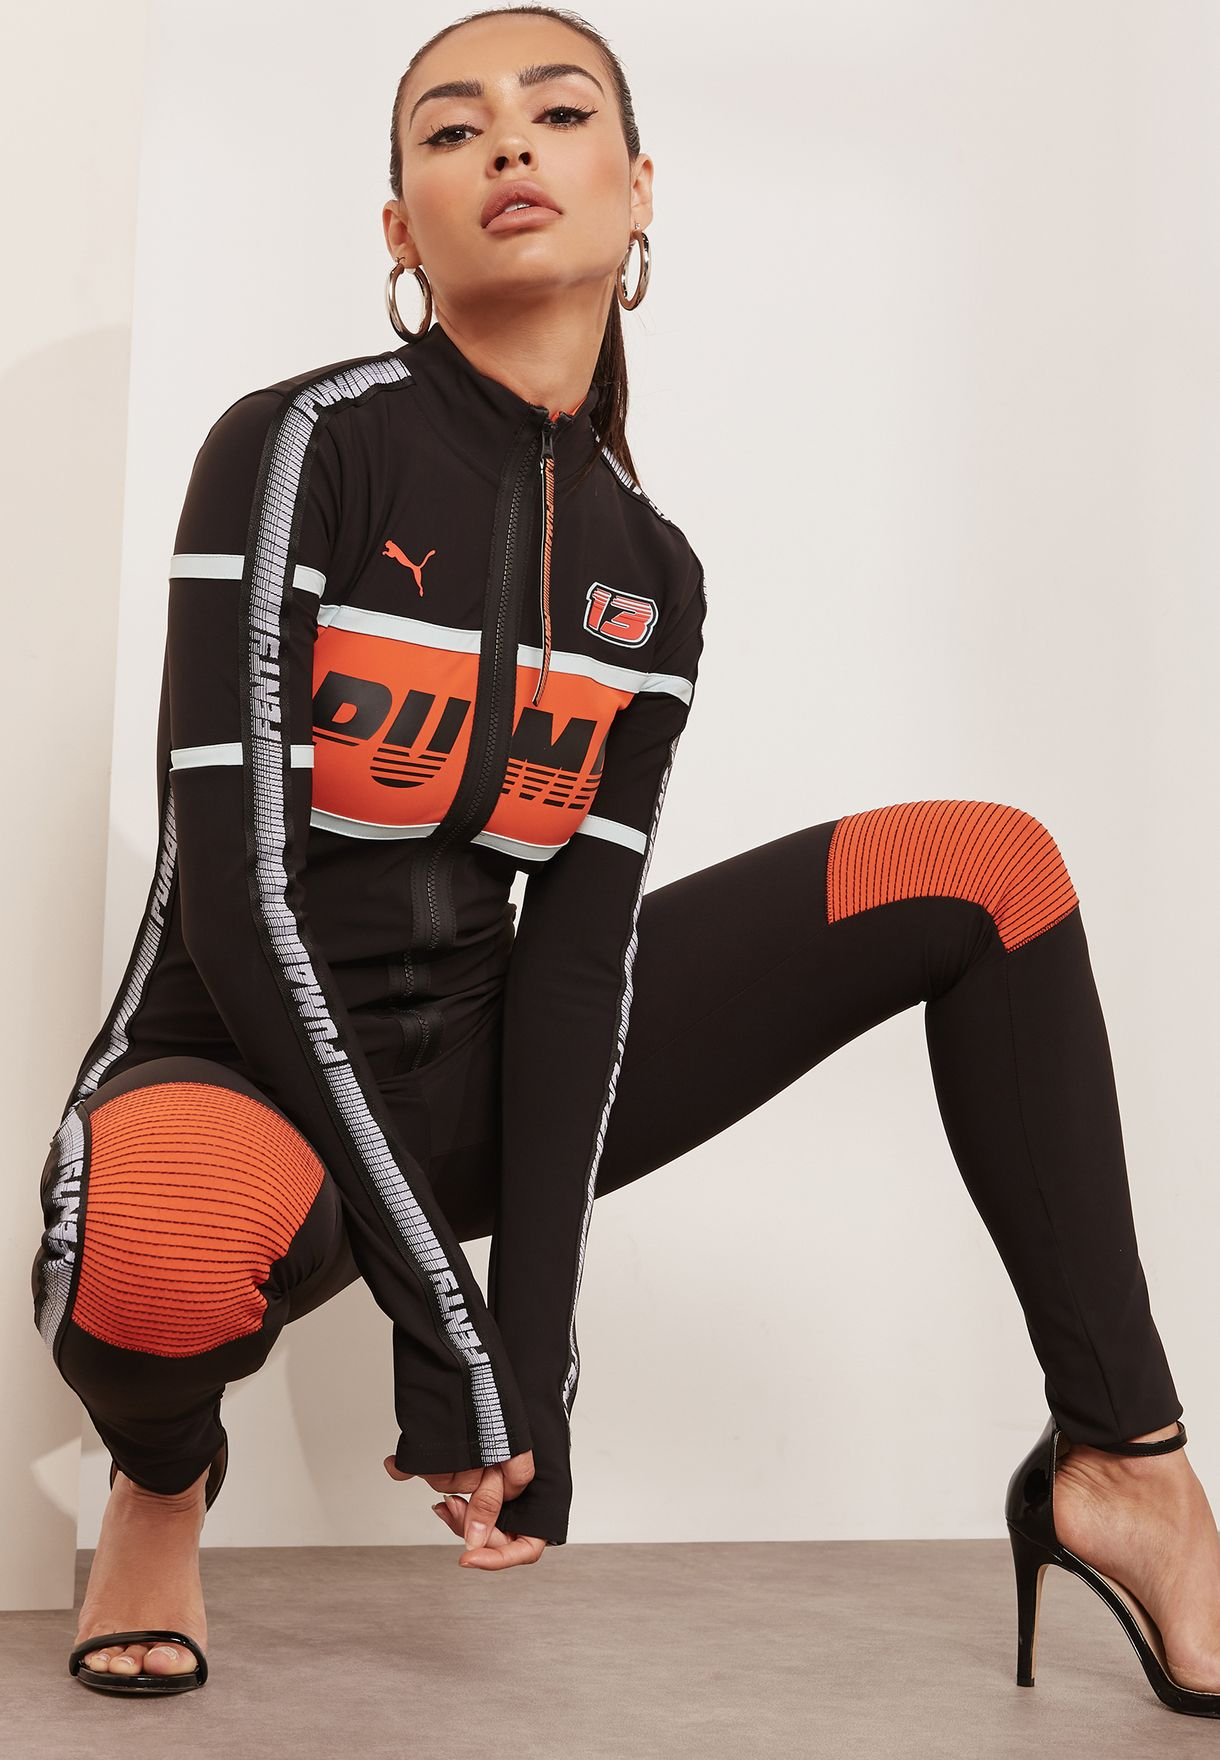 52ee4d052aa Shop PUMA x Fenty multicolor Fitted Racing Suit 57733102 for Women ...